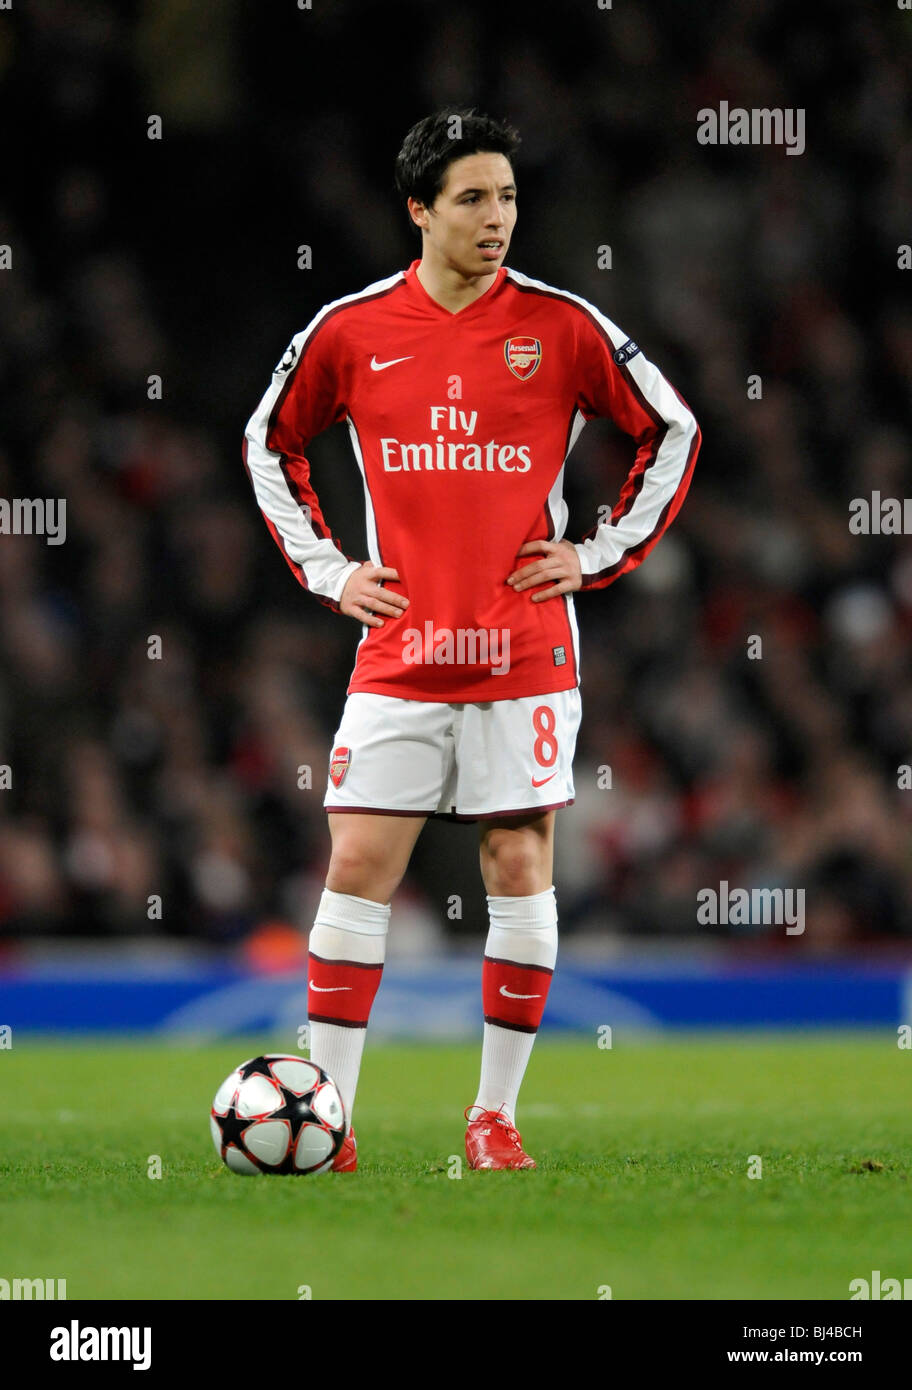 Arsenal No 8 Samir Nasri Arsenal V Porto UEFA Champions League